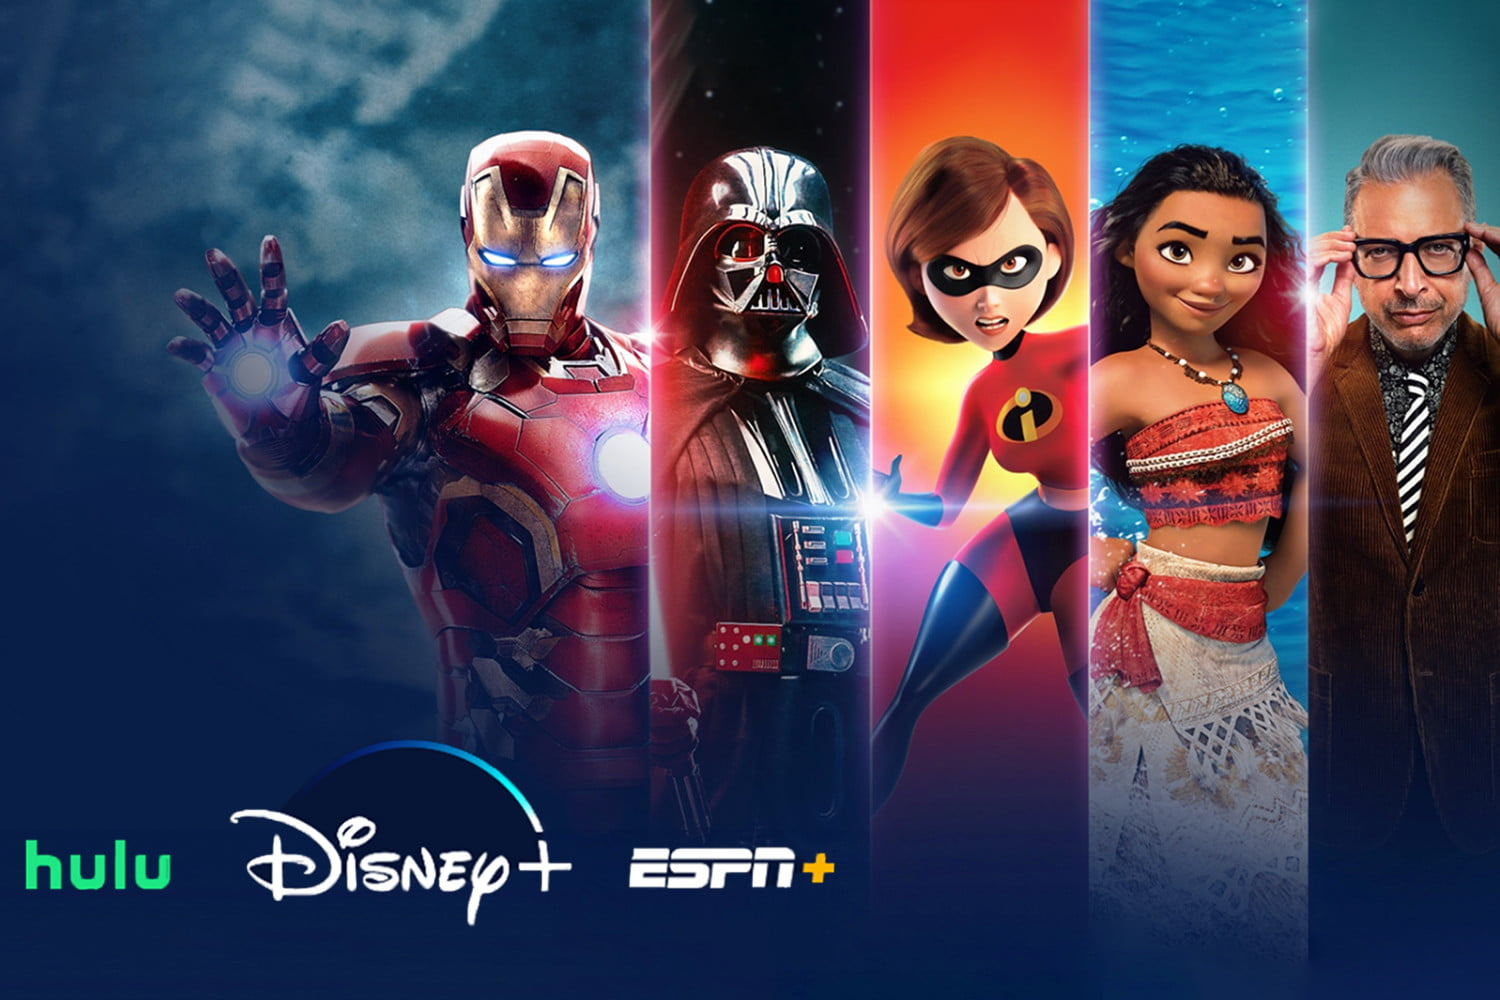 This Disney+ bundle with Hulu and ESPN+ is the best deal in streaming